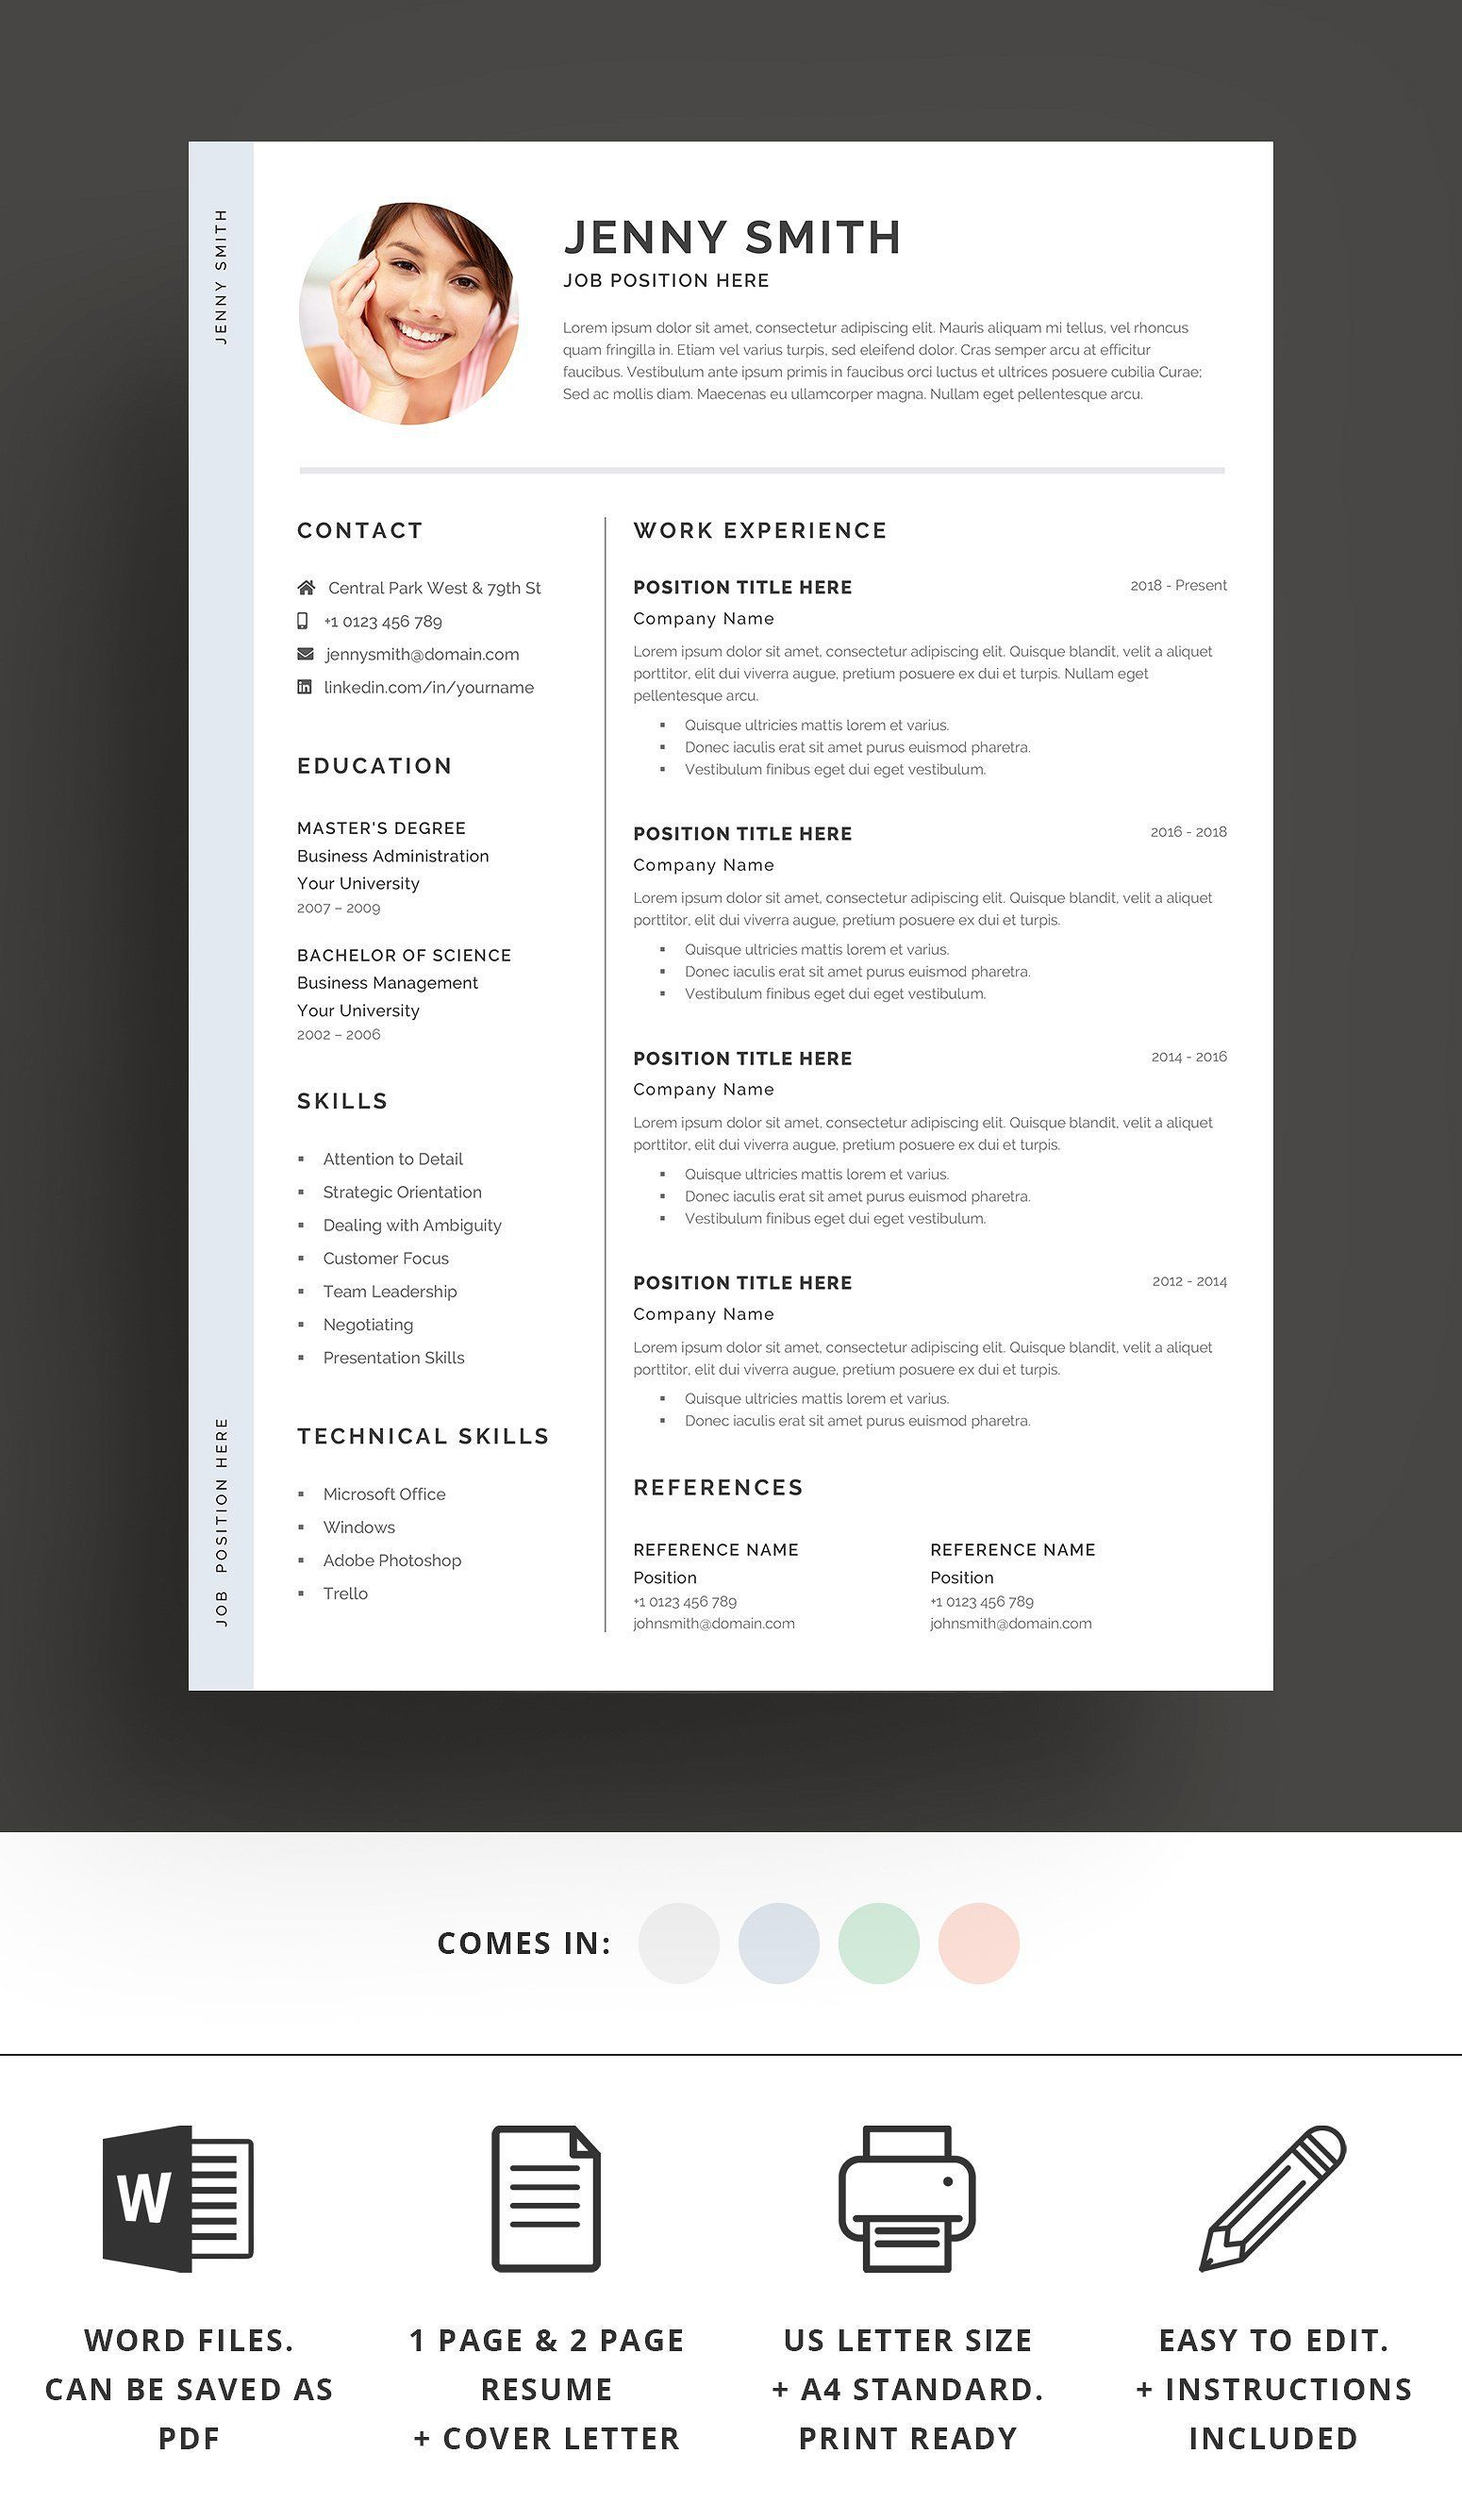 001 Impressive Resume Template On Word Picture  2007 Download 2016 How To Get 2010Full